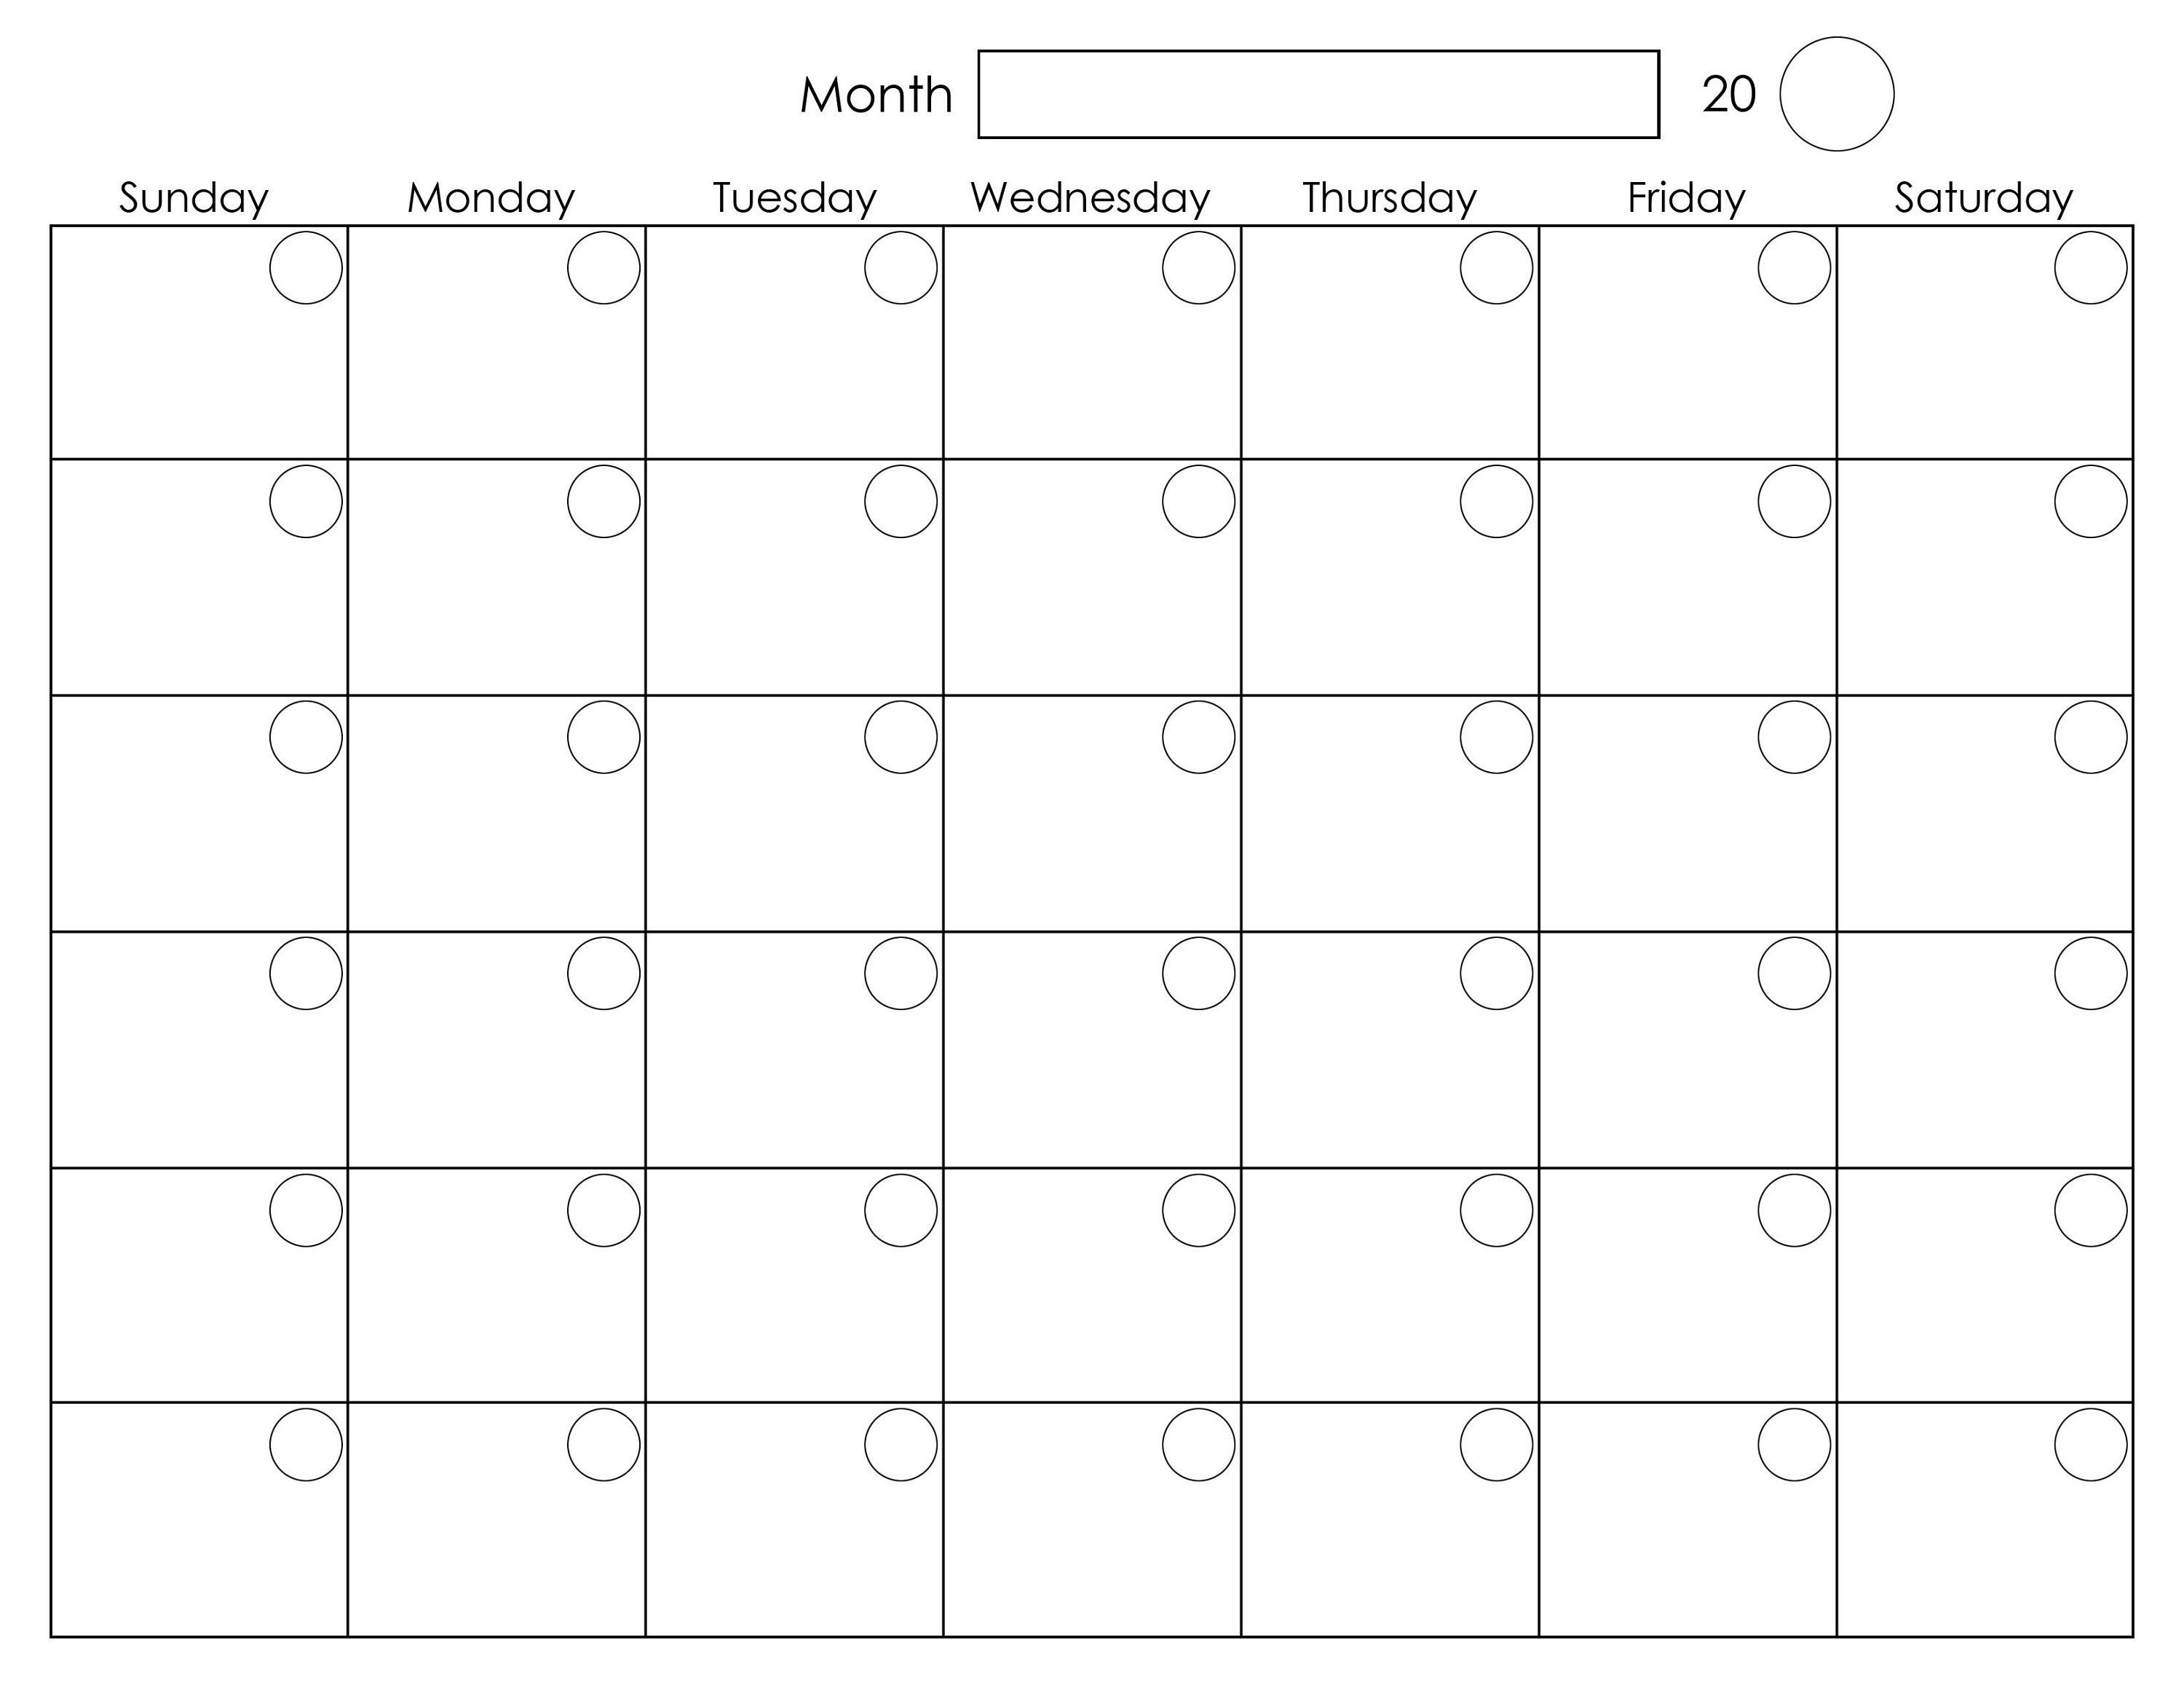 Free Fill In Calendar Templates Month | Calendar Printing-Fill In Calendar Template